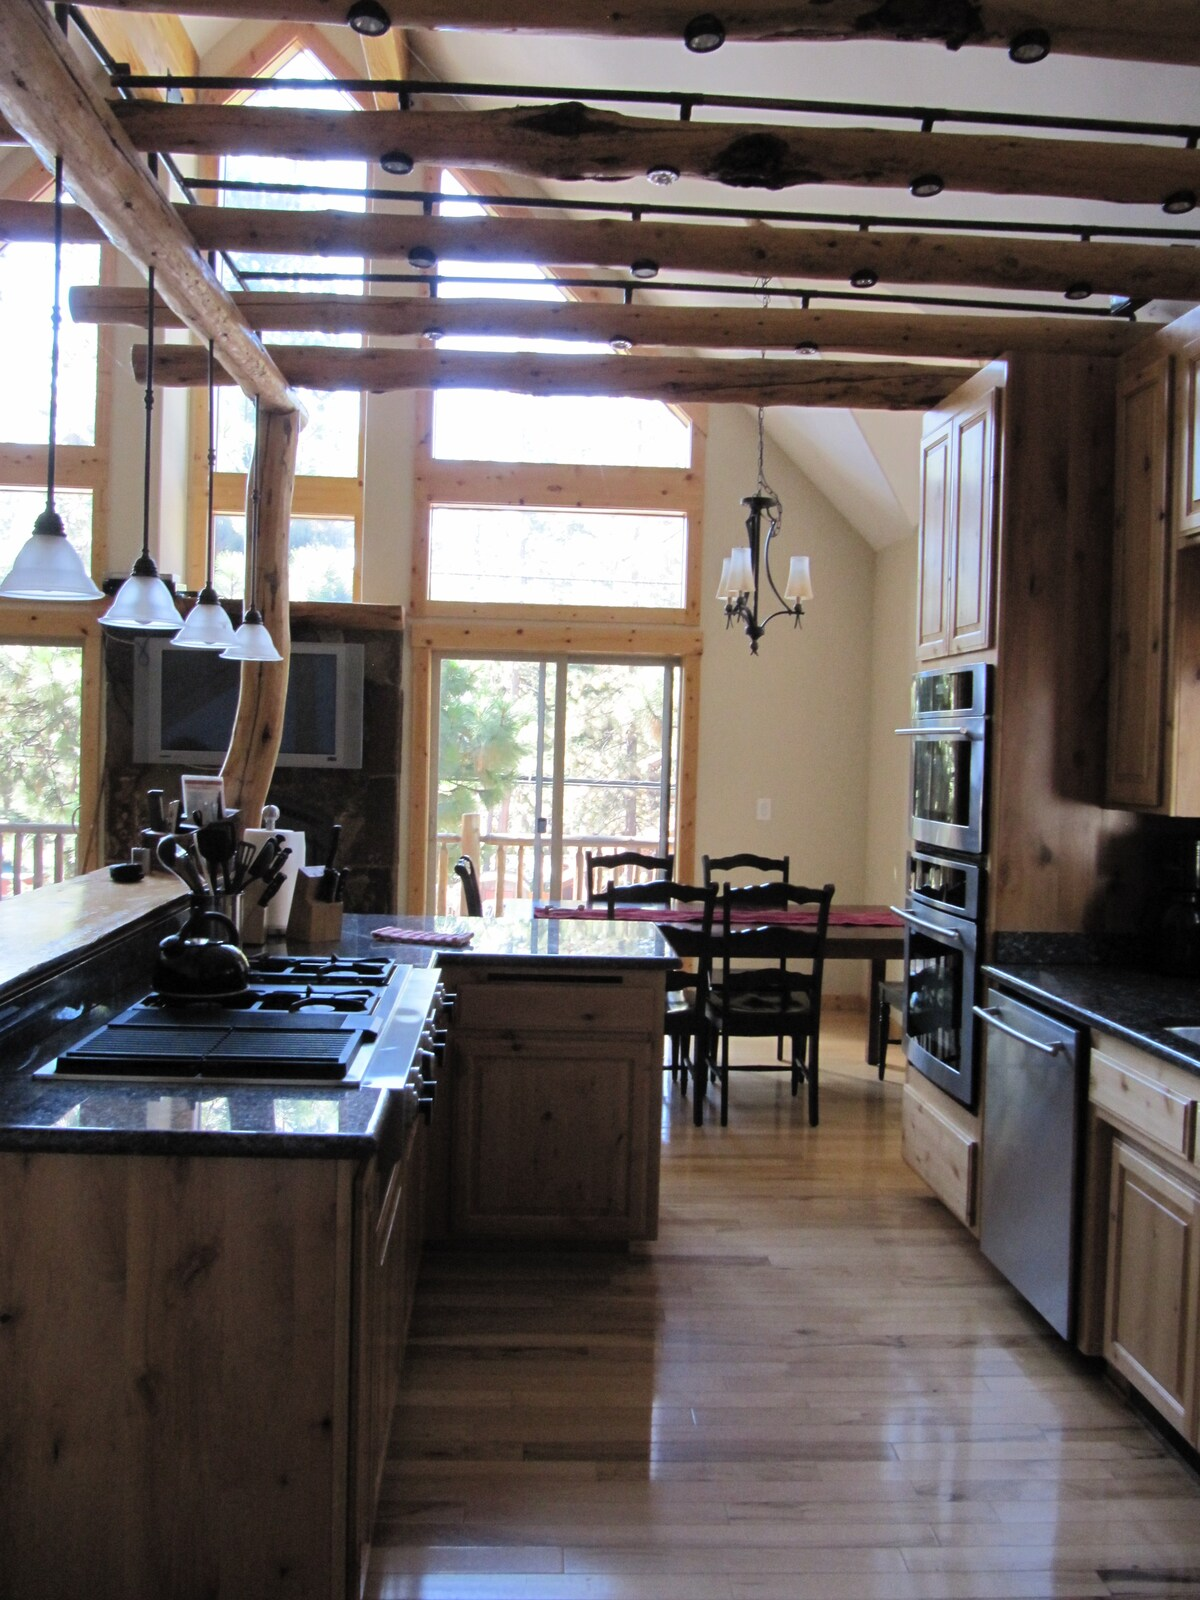 Modern fully stocked kitchen with stainless appliances, granite countertops and double oven